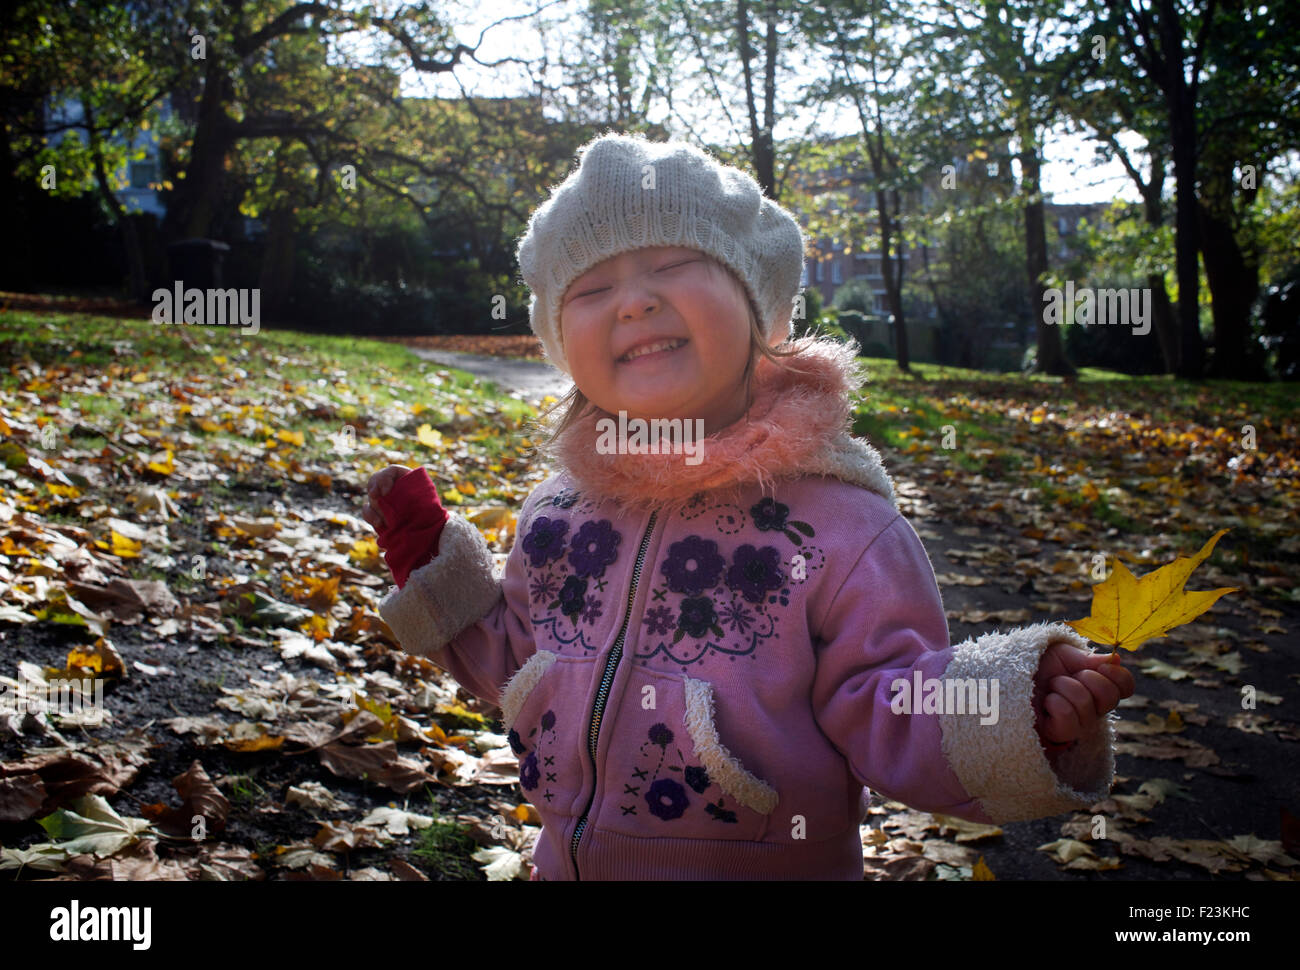 Toddler with a fallen leaf. St Ann's Well Gardens, Hove. brighton & Hove. England MODEL RELEASED - Stock Image